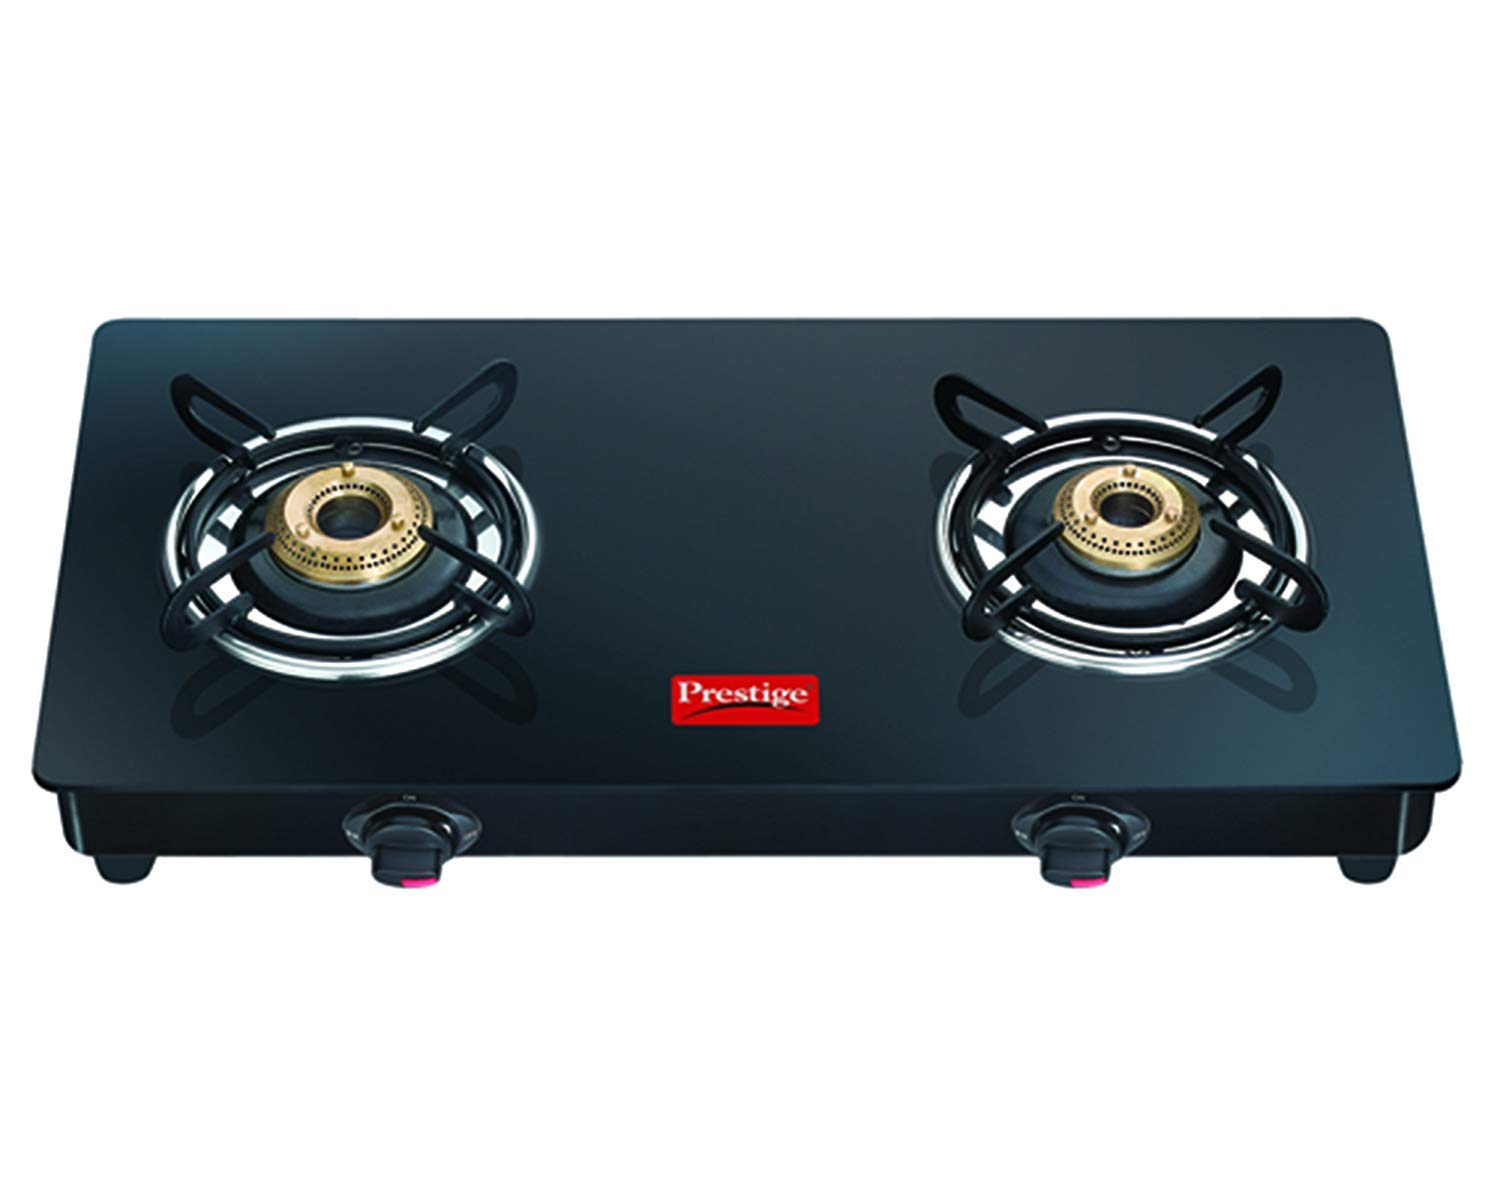 Best Prestige Gas Stove In India